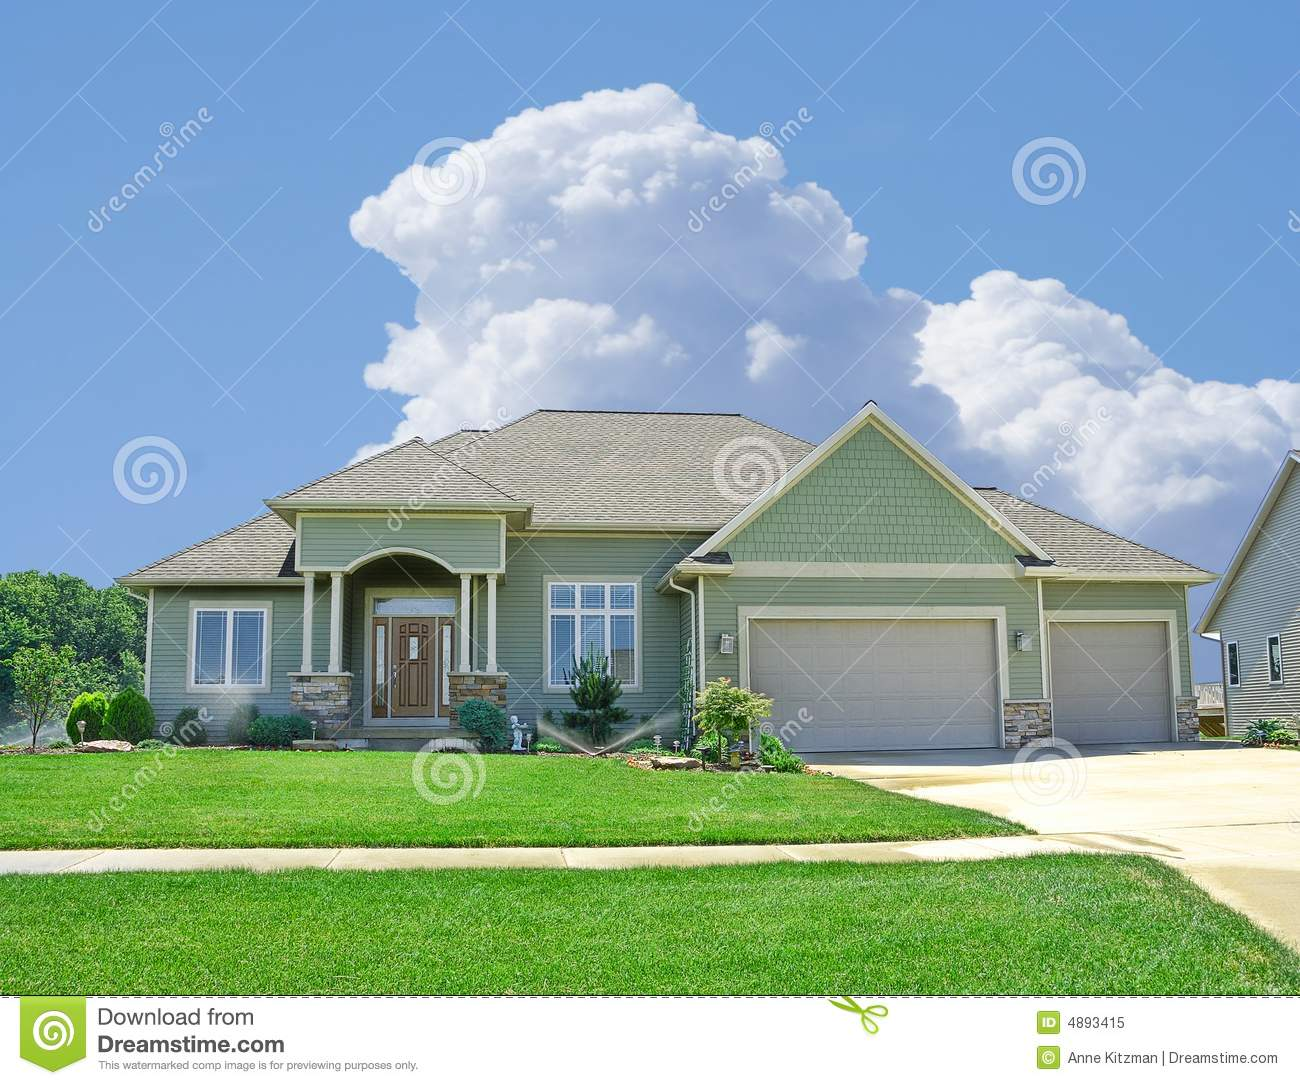 Suburban Home Vinyl Siding Stock Image Image Of Secluded